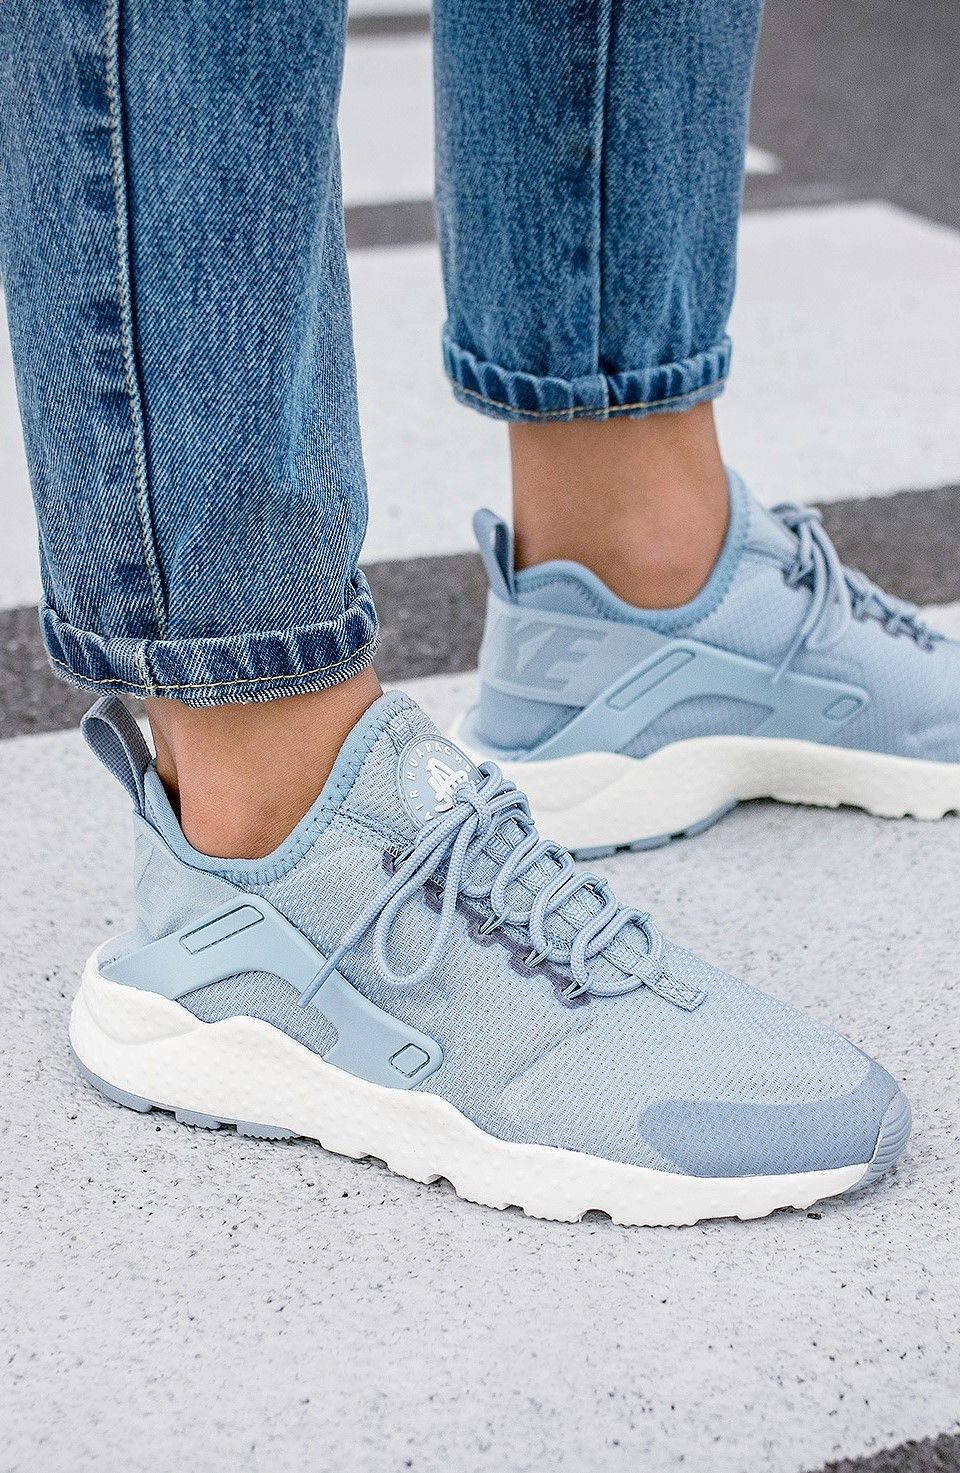 58403d03dd0 Nike Wmns Air Huarache Run Ultra  Blue Grey  (via Kicks-daily.com ...